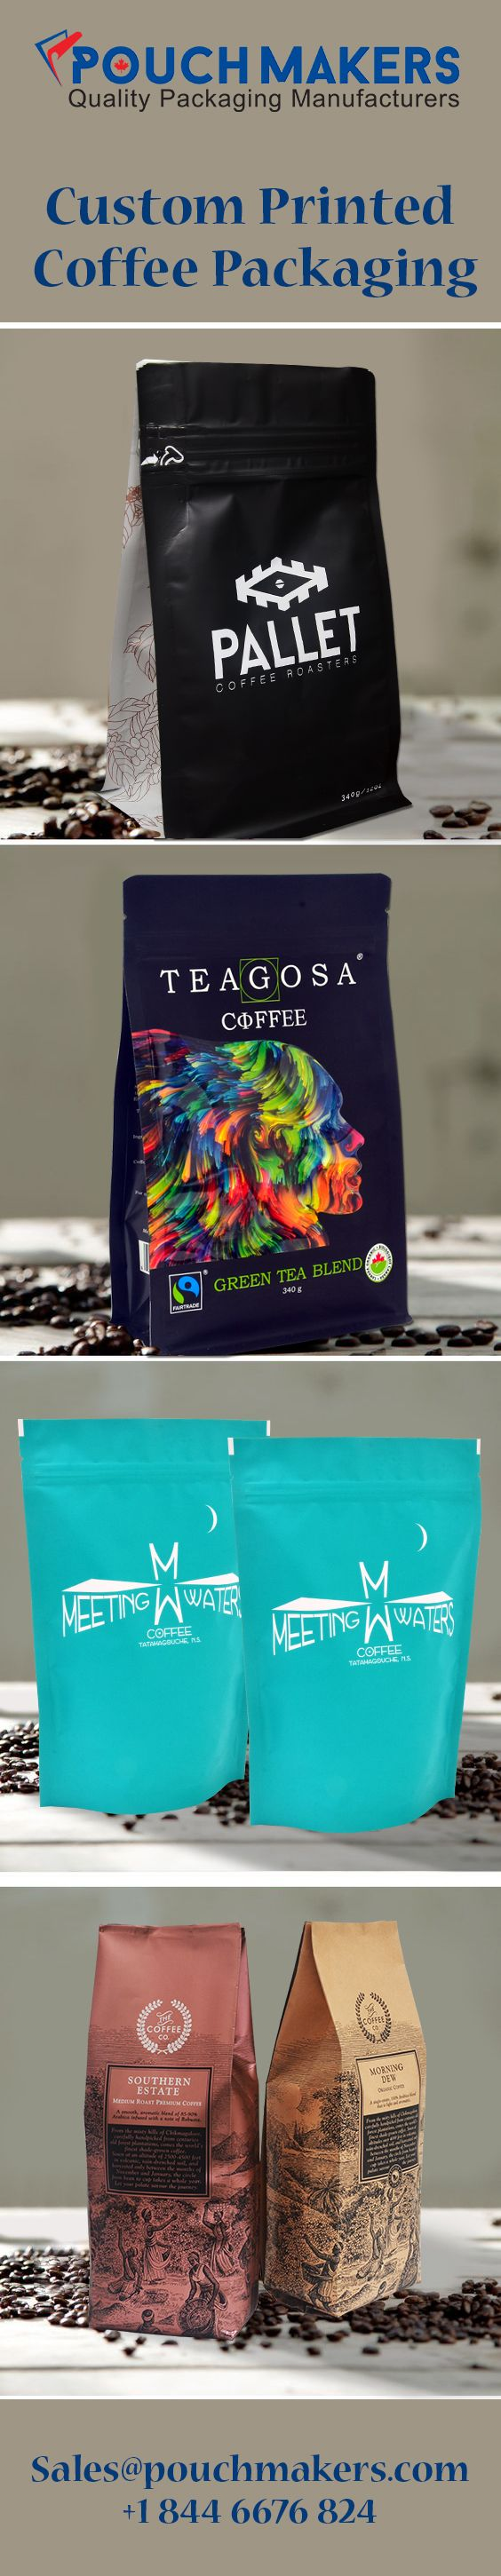 Pallet Coffee Pouch | Teagosa Coffee Pouch | Meeting Waters Coffee Bags  #CoffeePackaging #CoffeeBags #CoffeePackagingDesigns #RoastedCoffeePackaging #CoffeePackagingBags #DigitalPrinted #CoffeePouches #CustomStandUpPouches #PrintedCoffeePouches #StandUpBags #CoffeeBeansPackaging #CoffeePackage